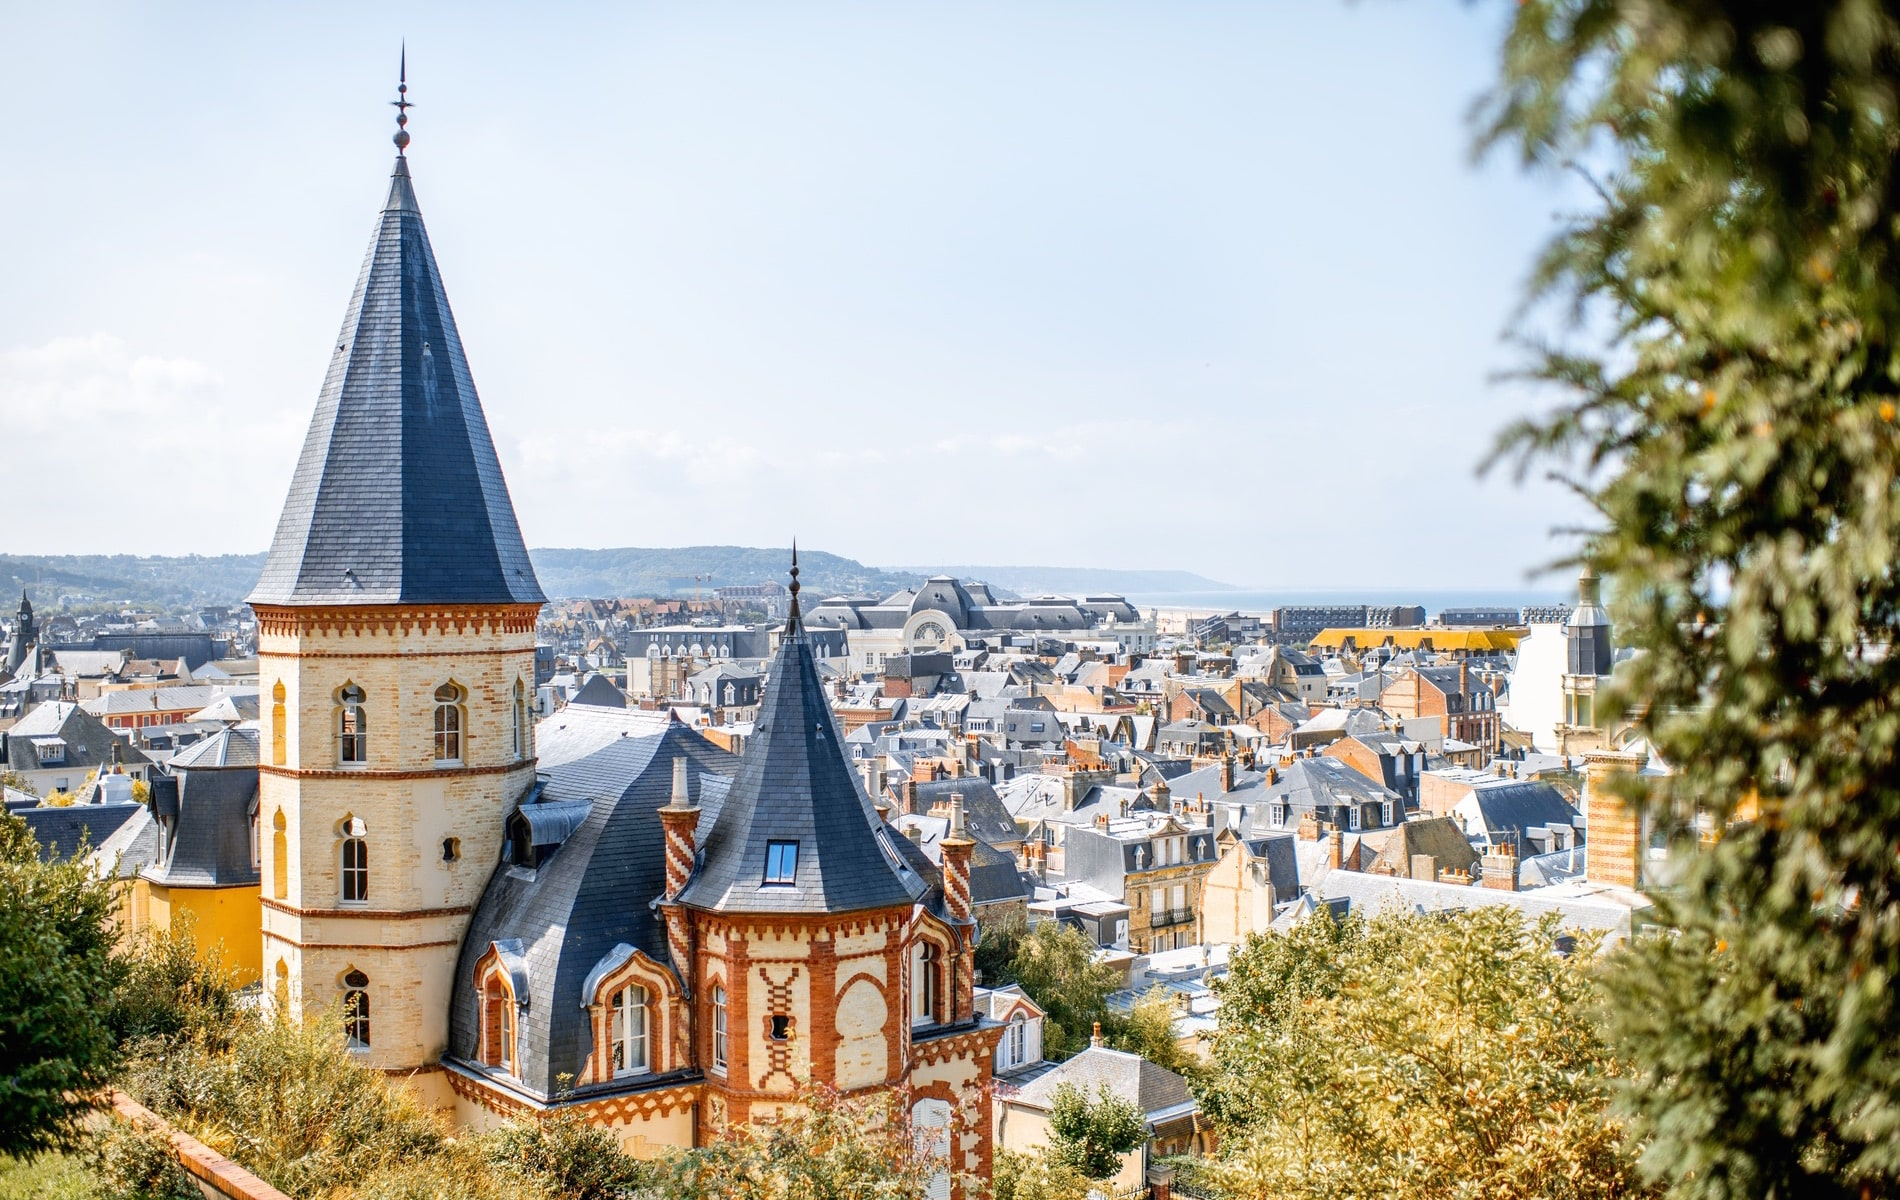 View of Trouville, France, with its picturesque rooftops and the English Channel in the distance